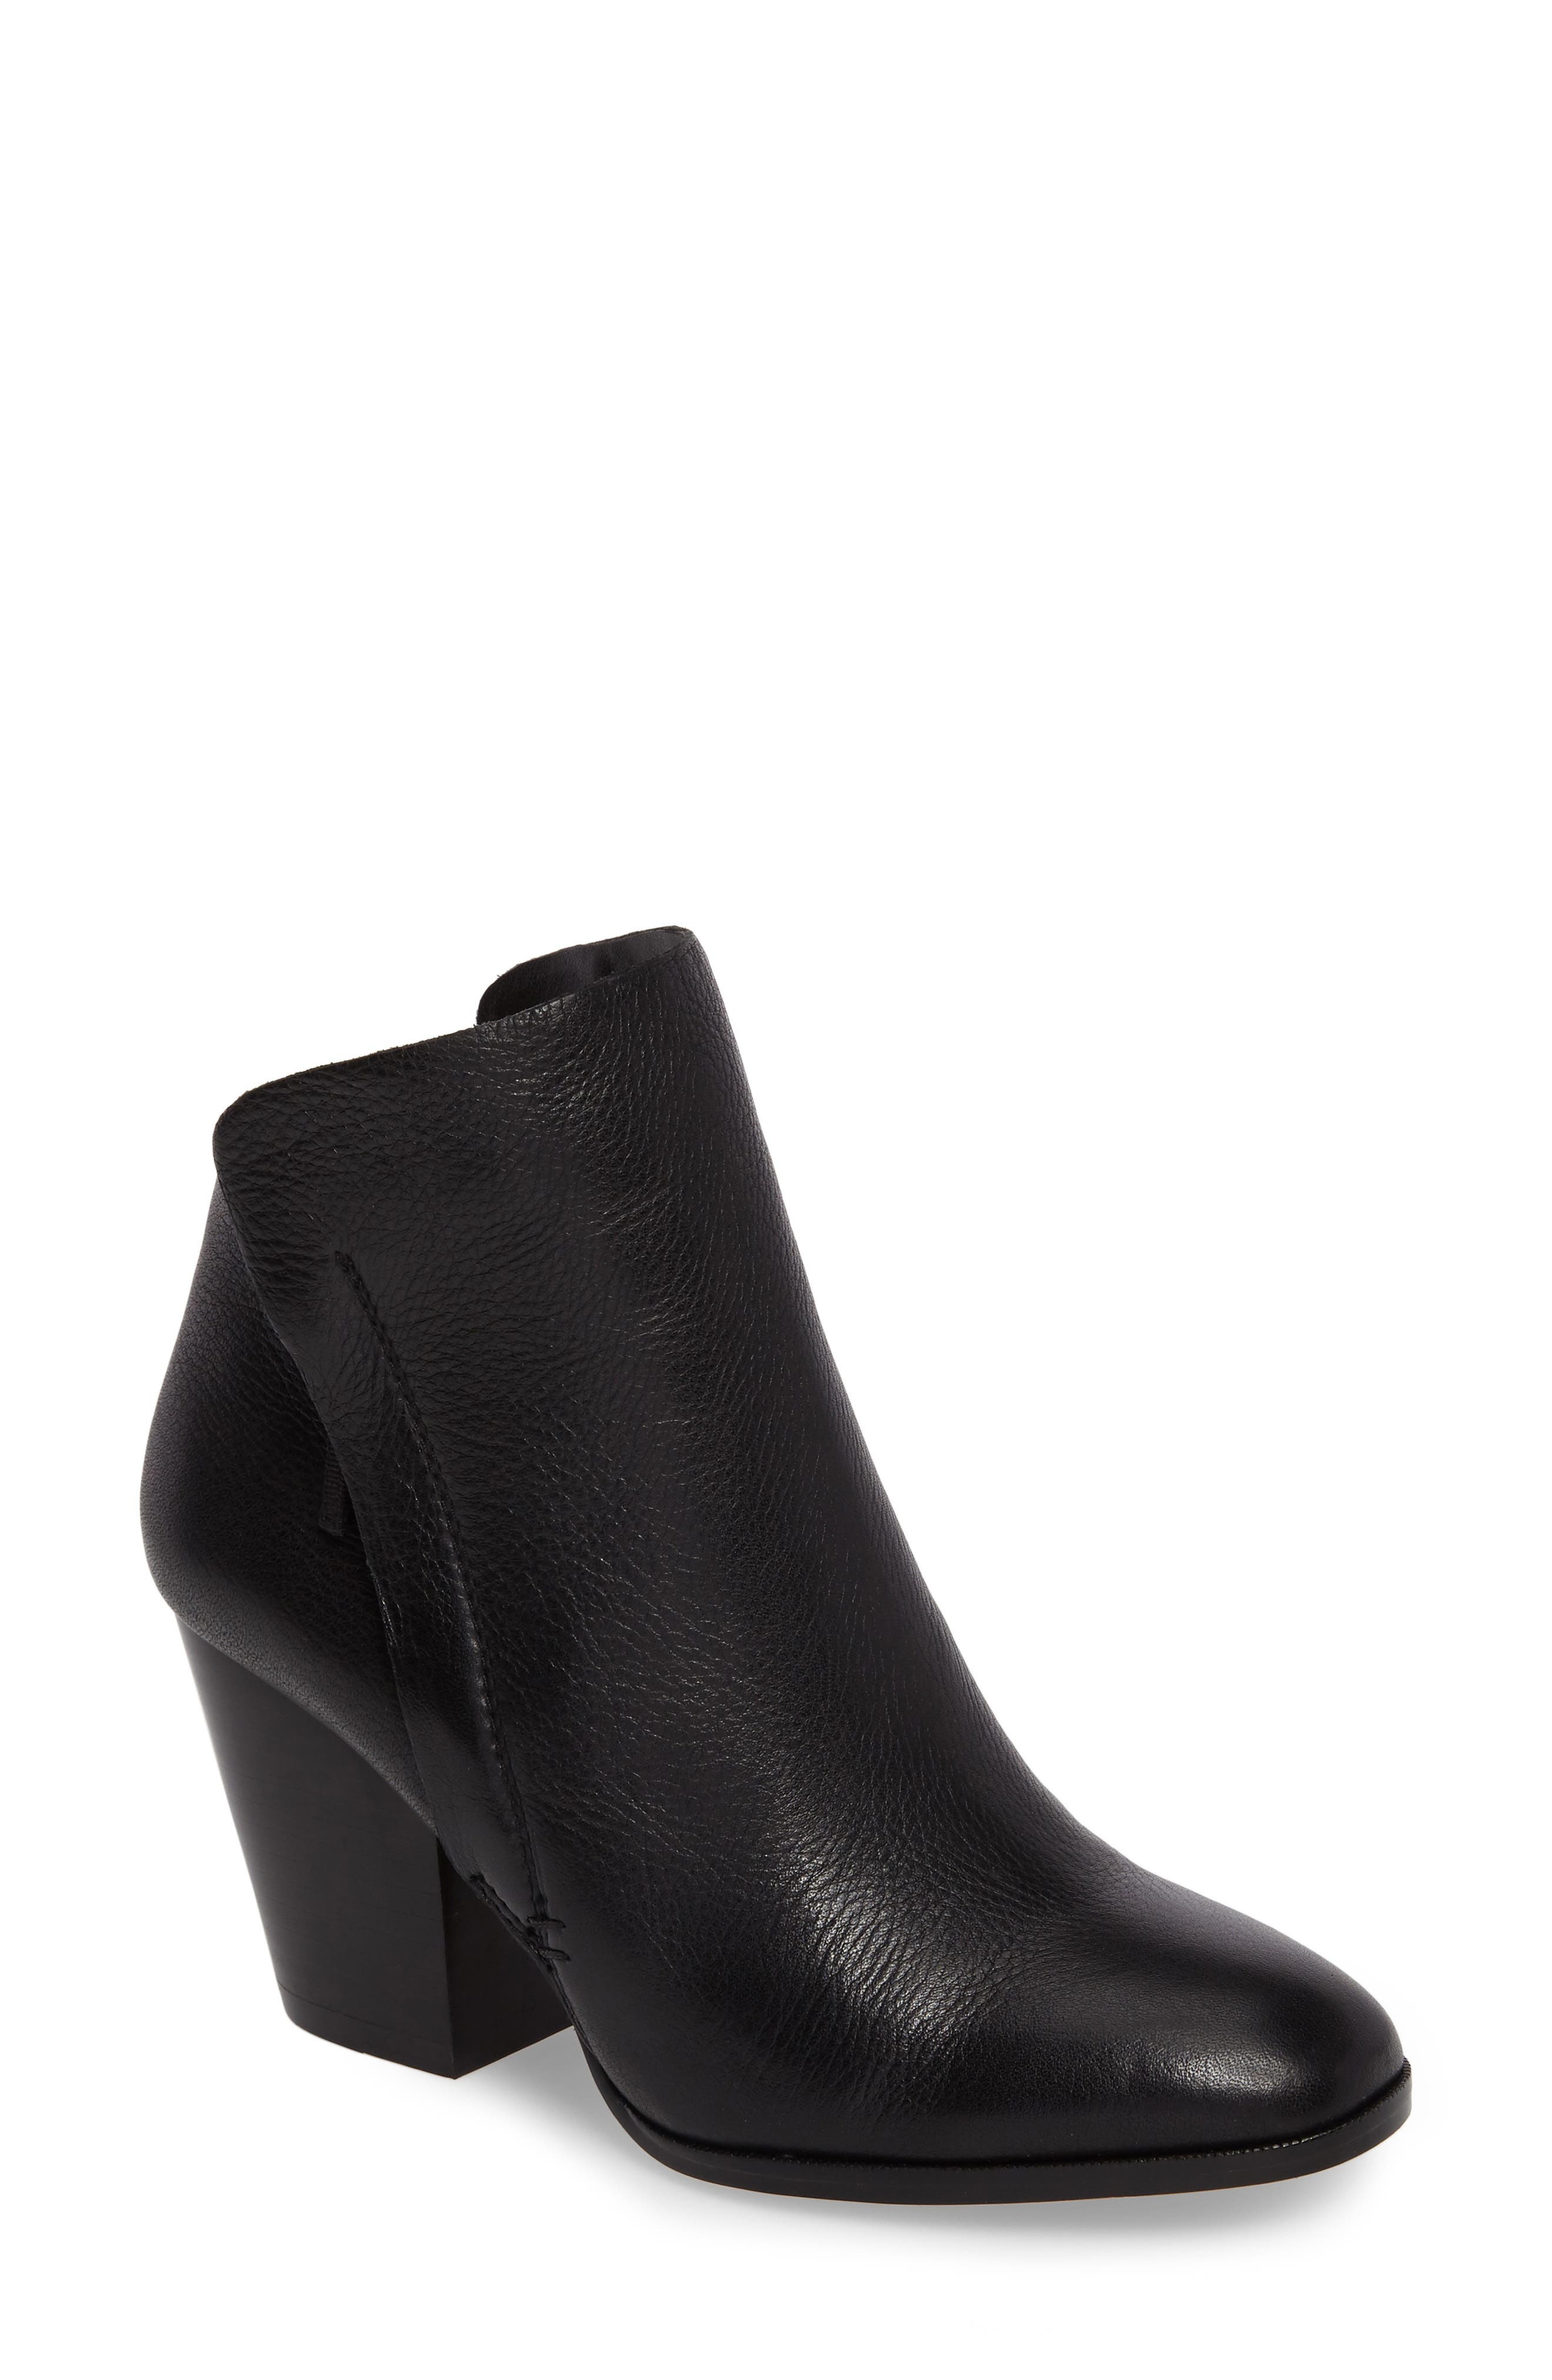 Taila Angle Zip Bootie,                             Main thumbnail 1, color,